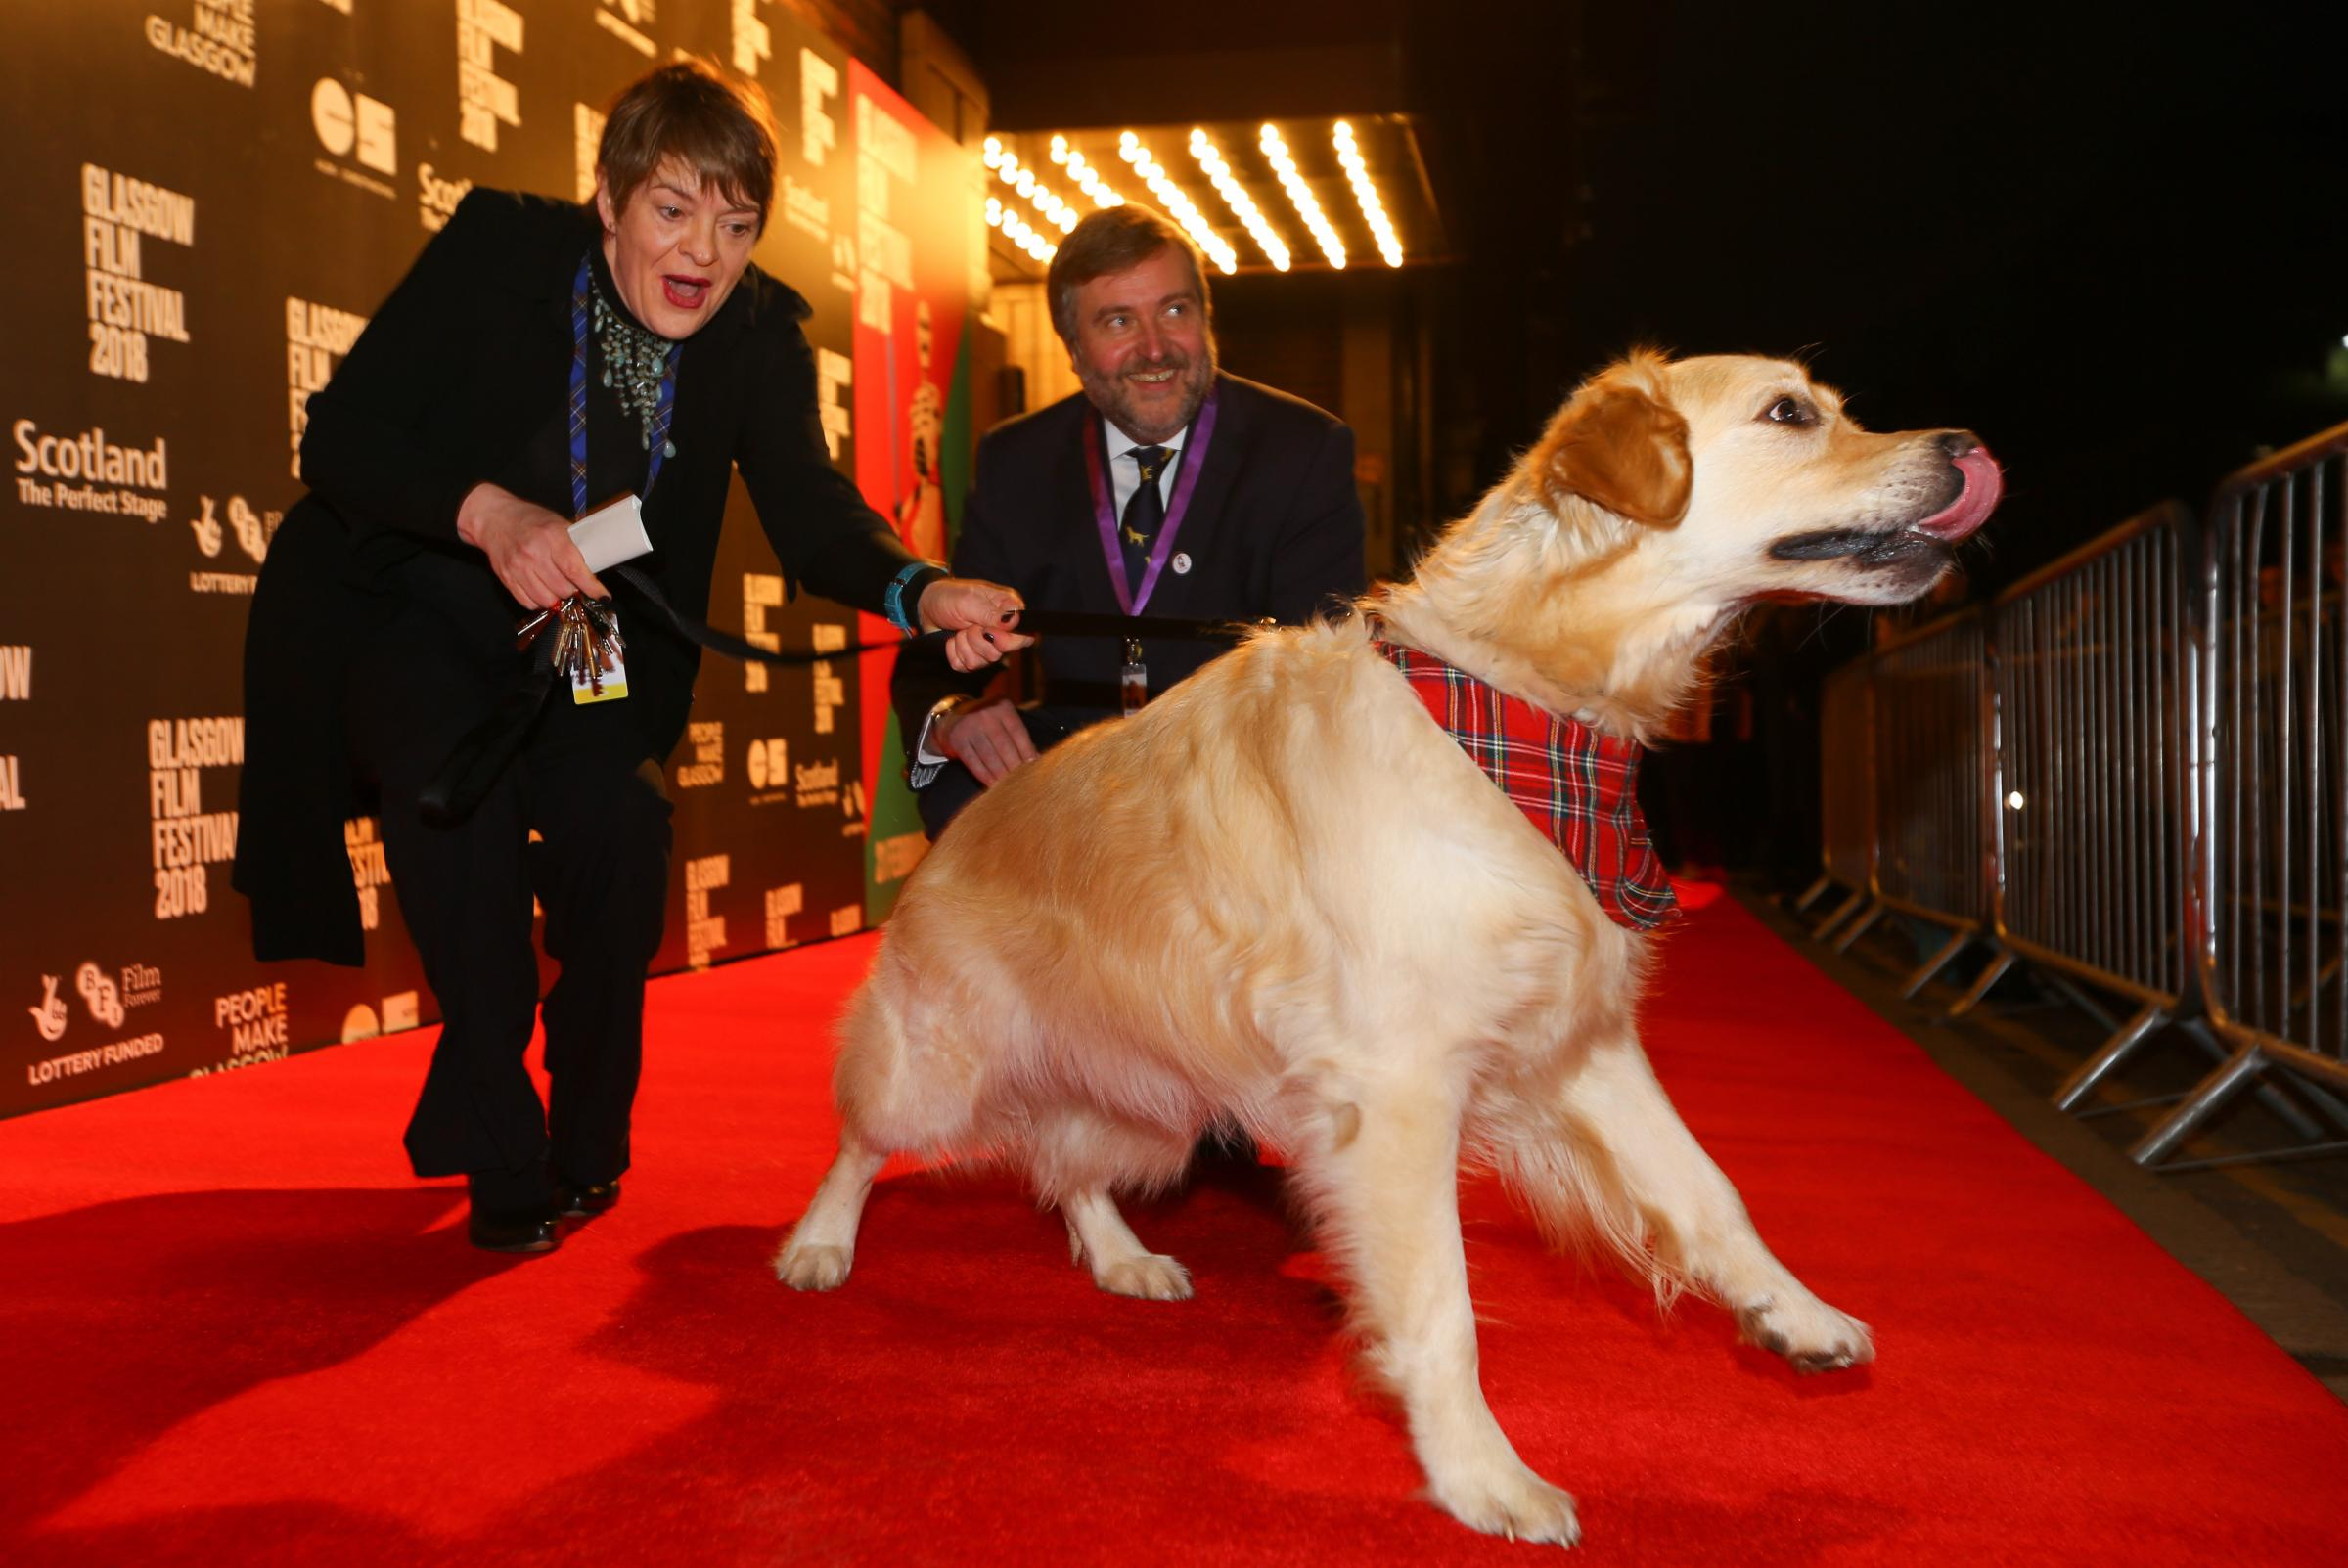 Allison Gardner and Allan Hunter, Glasgow Film Festival co-directors, are joined on the red carpet by VisitScotland 'ambassadog' George. Picture: Colin Mearns